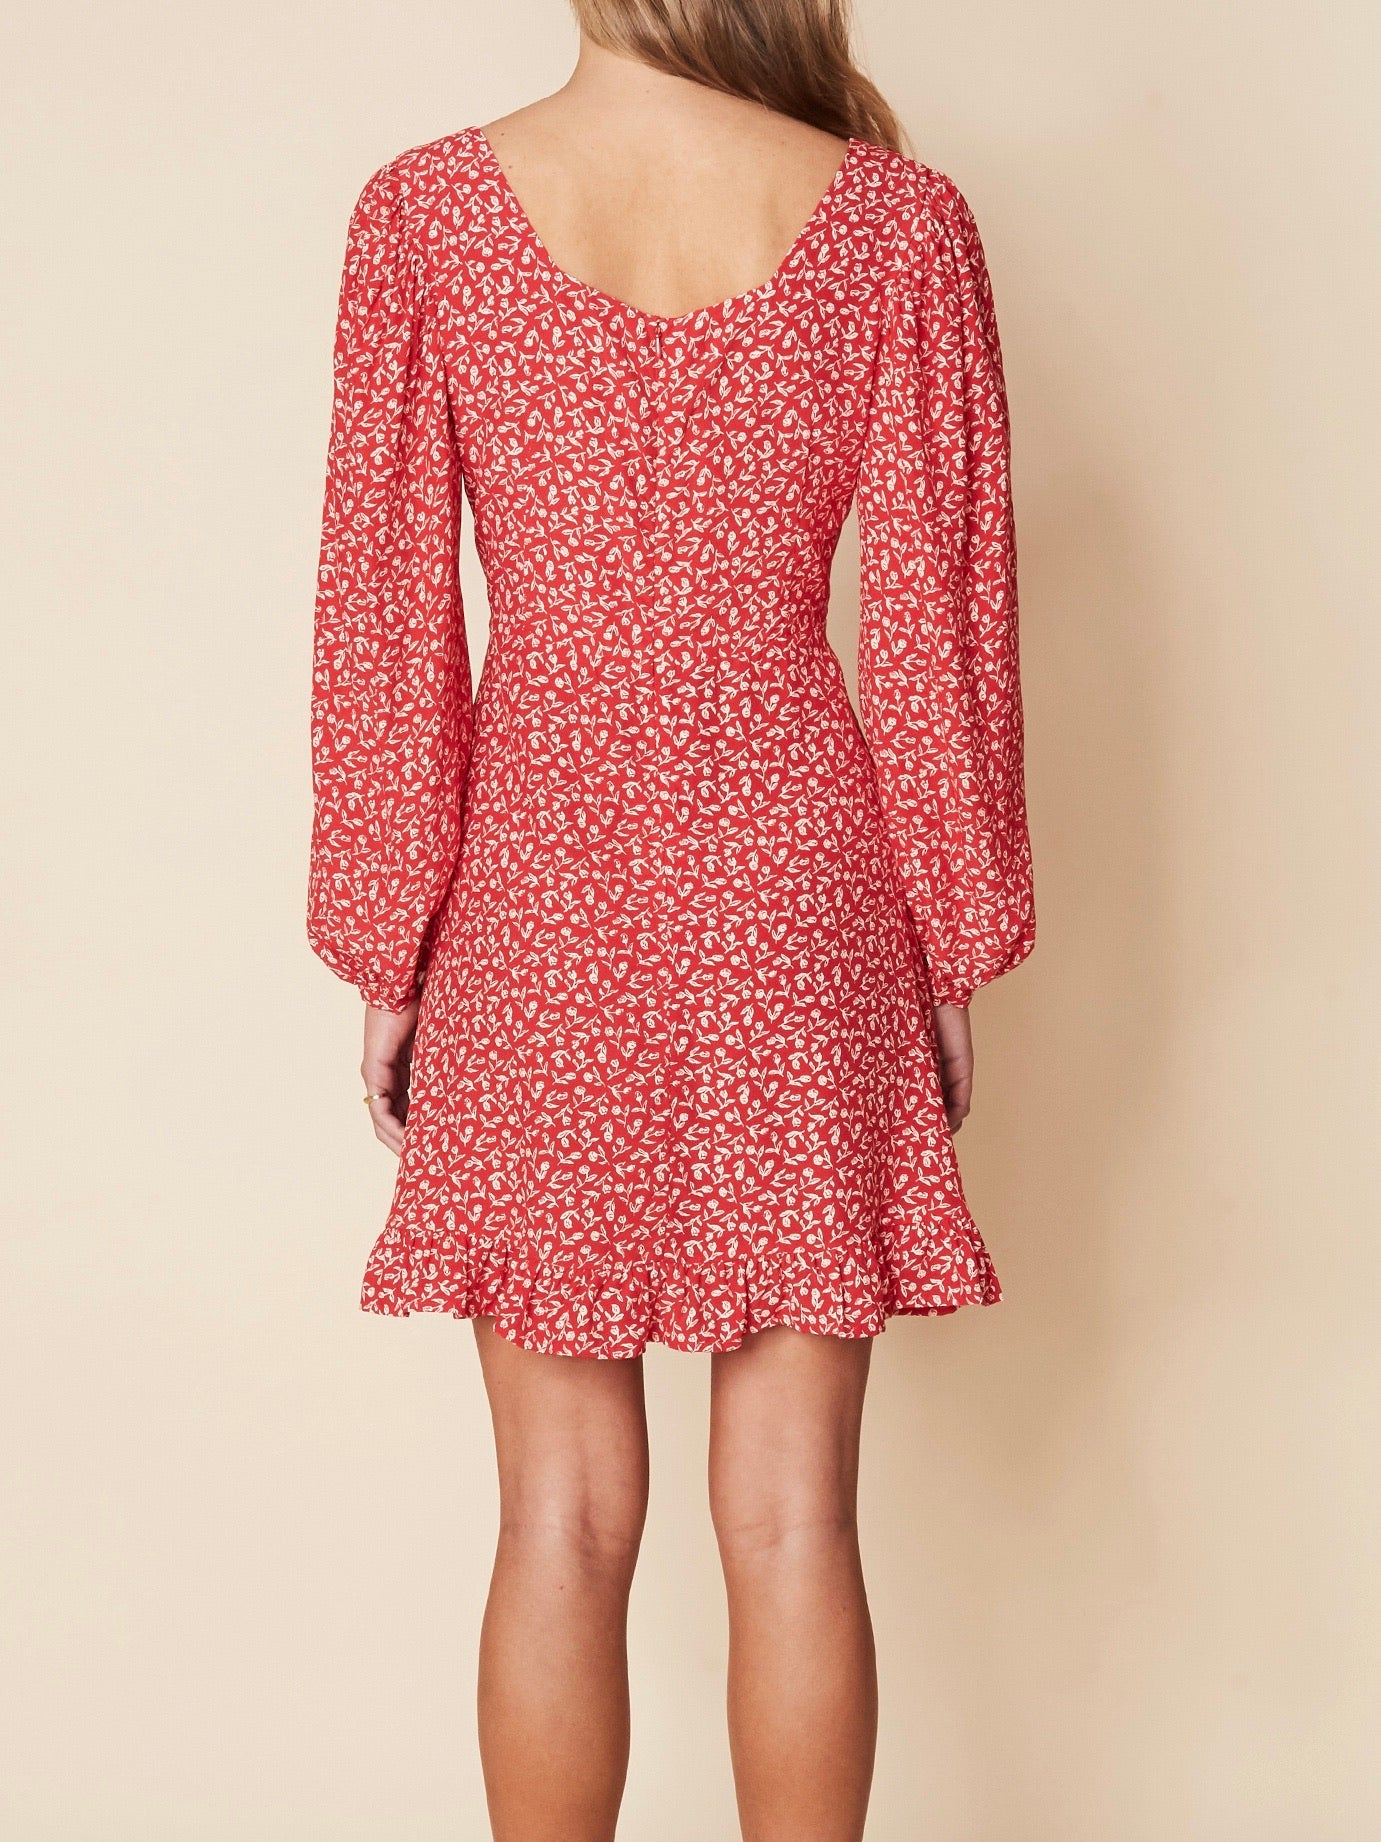 Calla Mini Dress - Maddy Floral Vintage Red